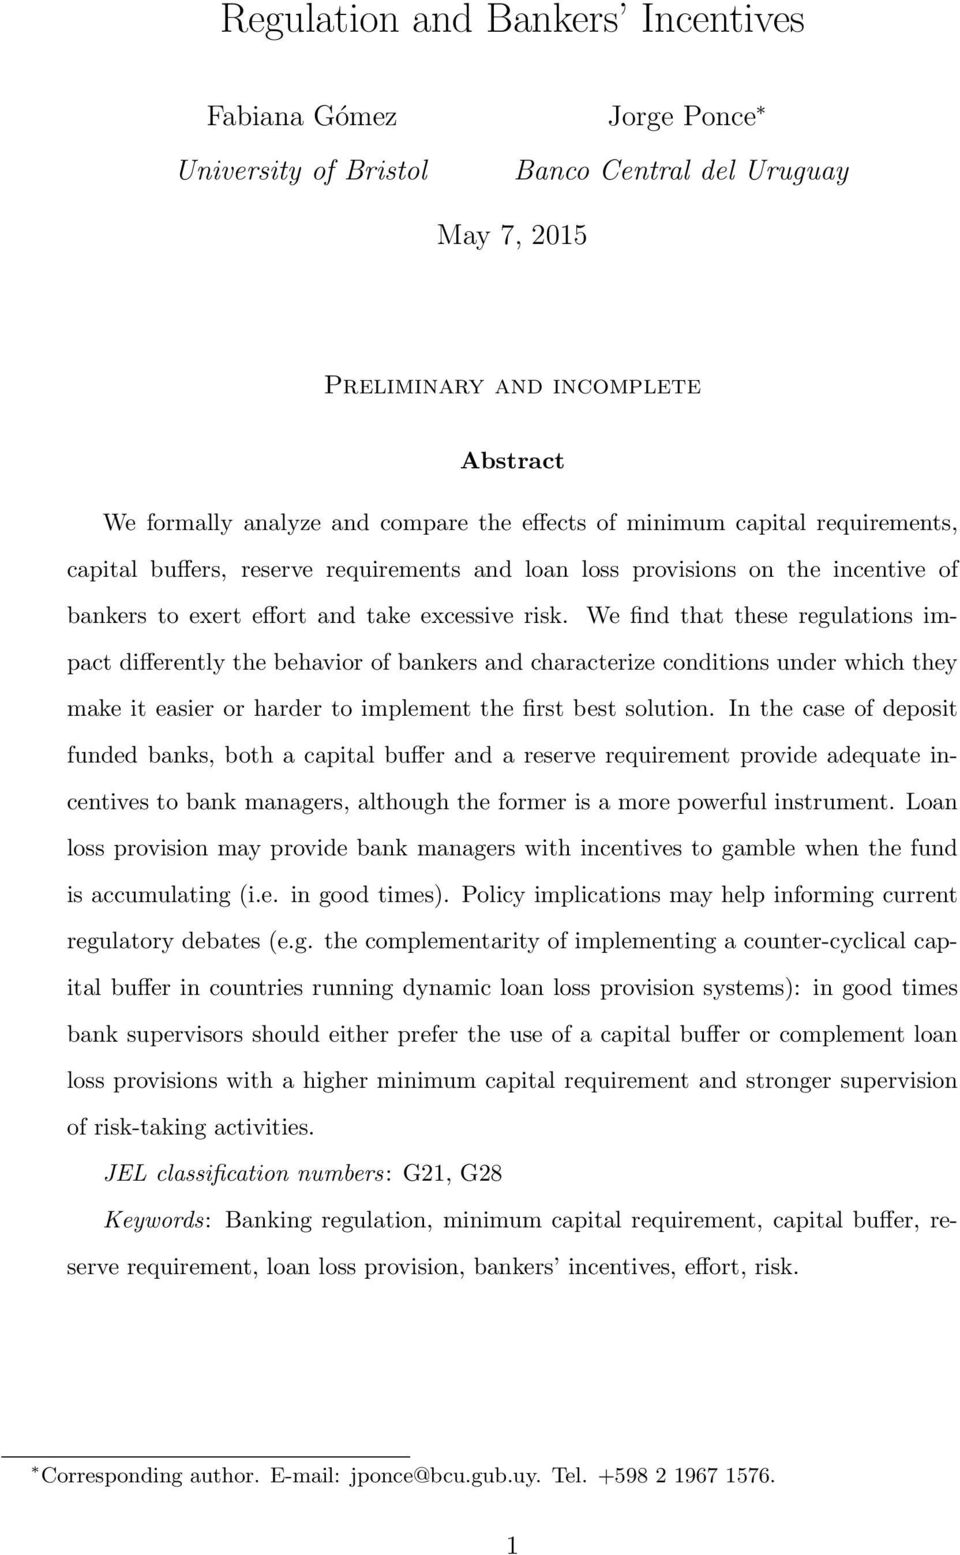 We find that these regulations impact differently the behavior of bankers and characterize conditions under which they make it easier or harder to implement the first best solution.